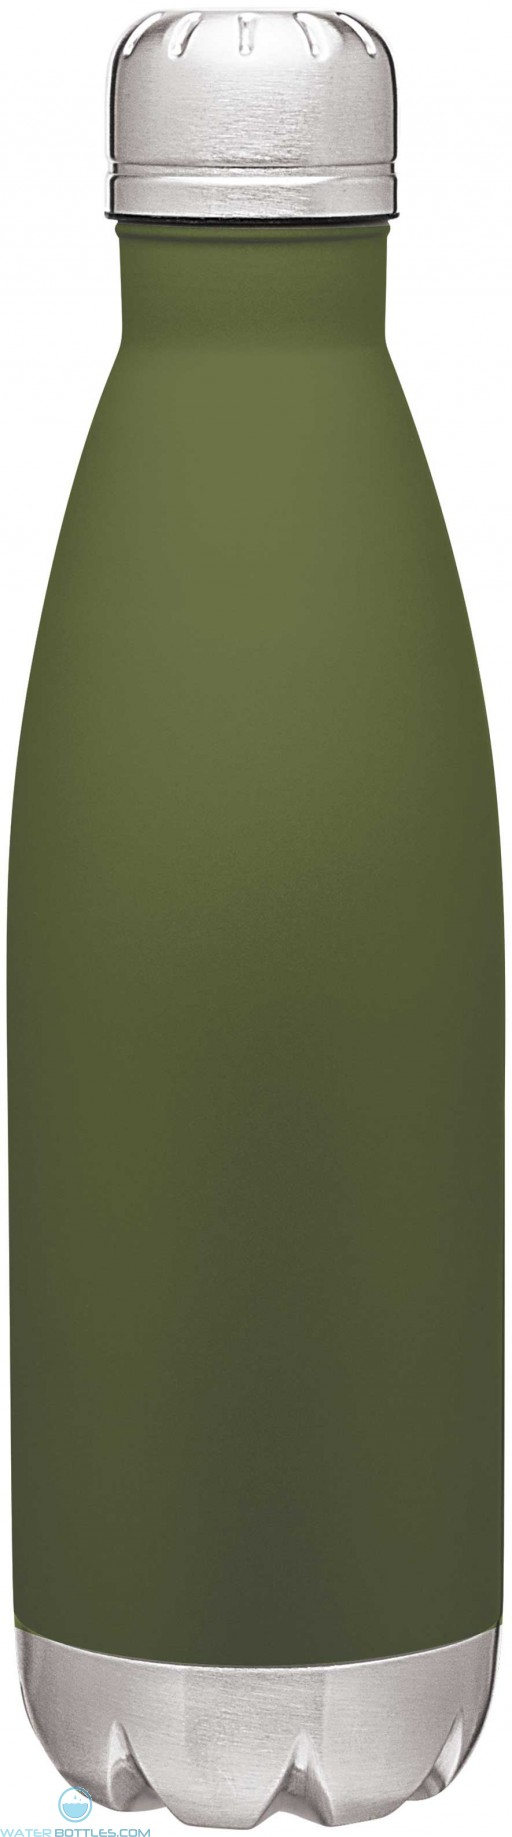 H2Go Force Thermal Bottles | 17 oz - Matte Army Green